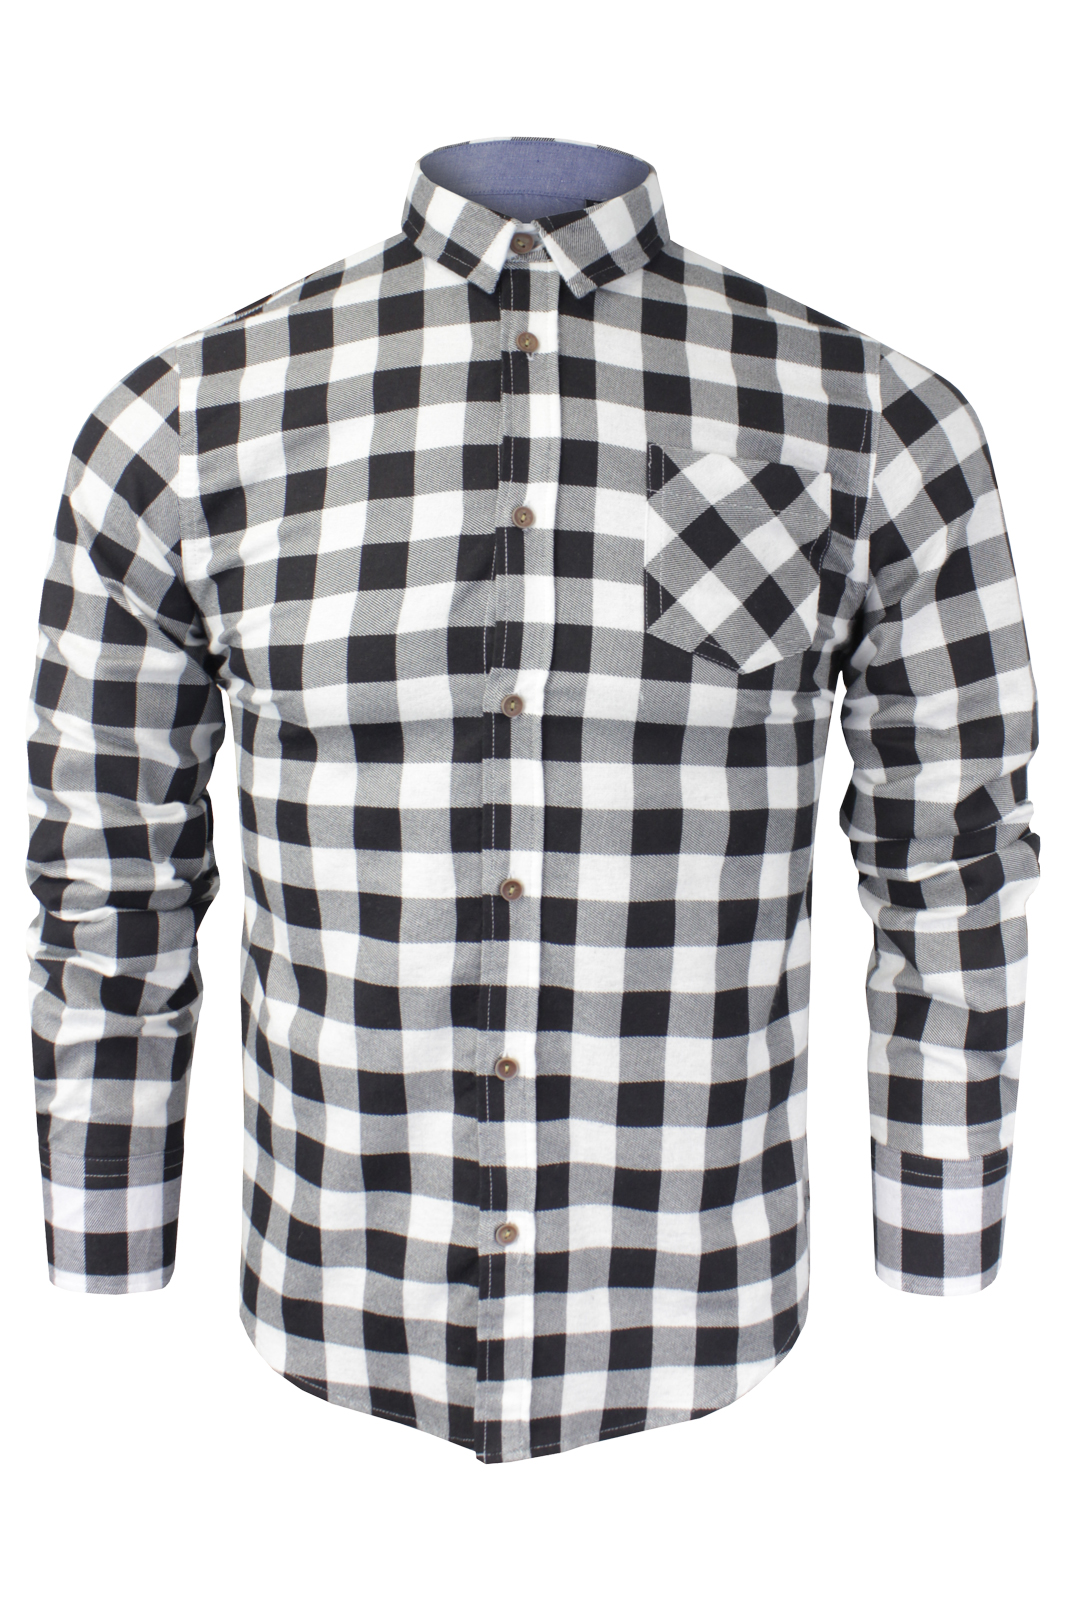 MENS LONG SLEEVE SHIRT BRUSHED COTTON FLANNEL CHECK LUMBERJACK CASUAL TOPS S-XL